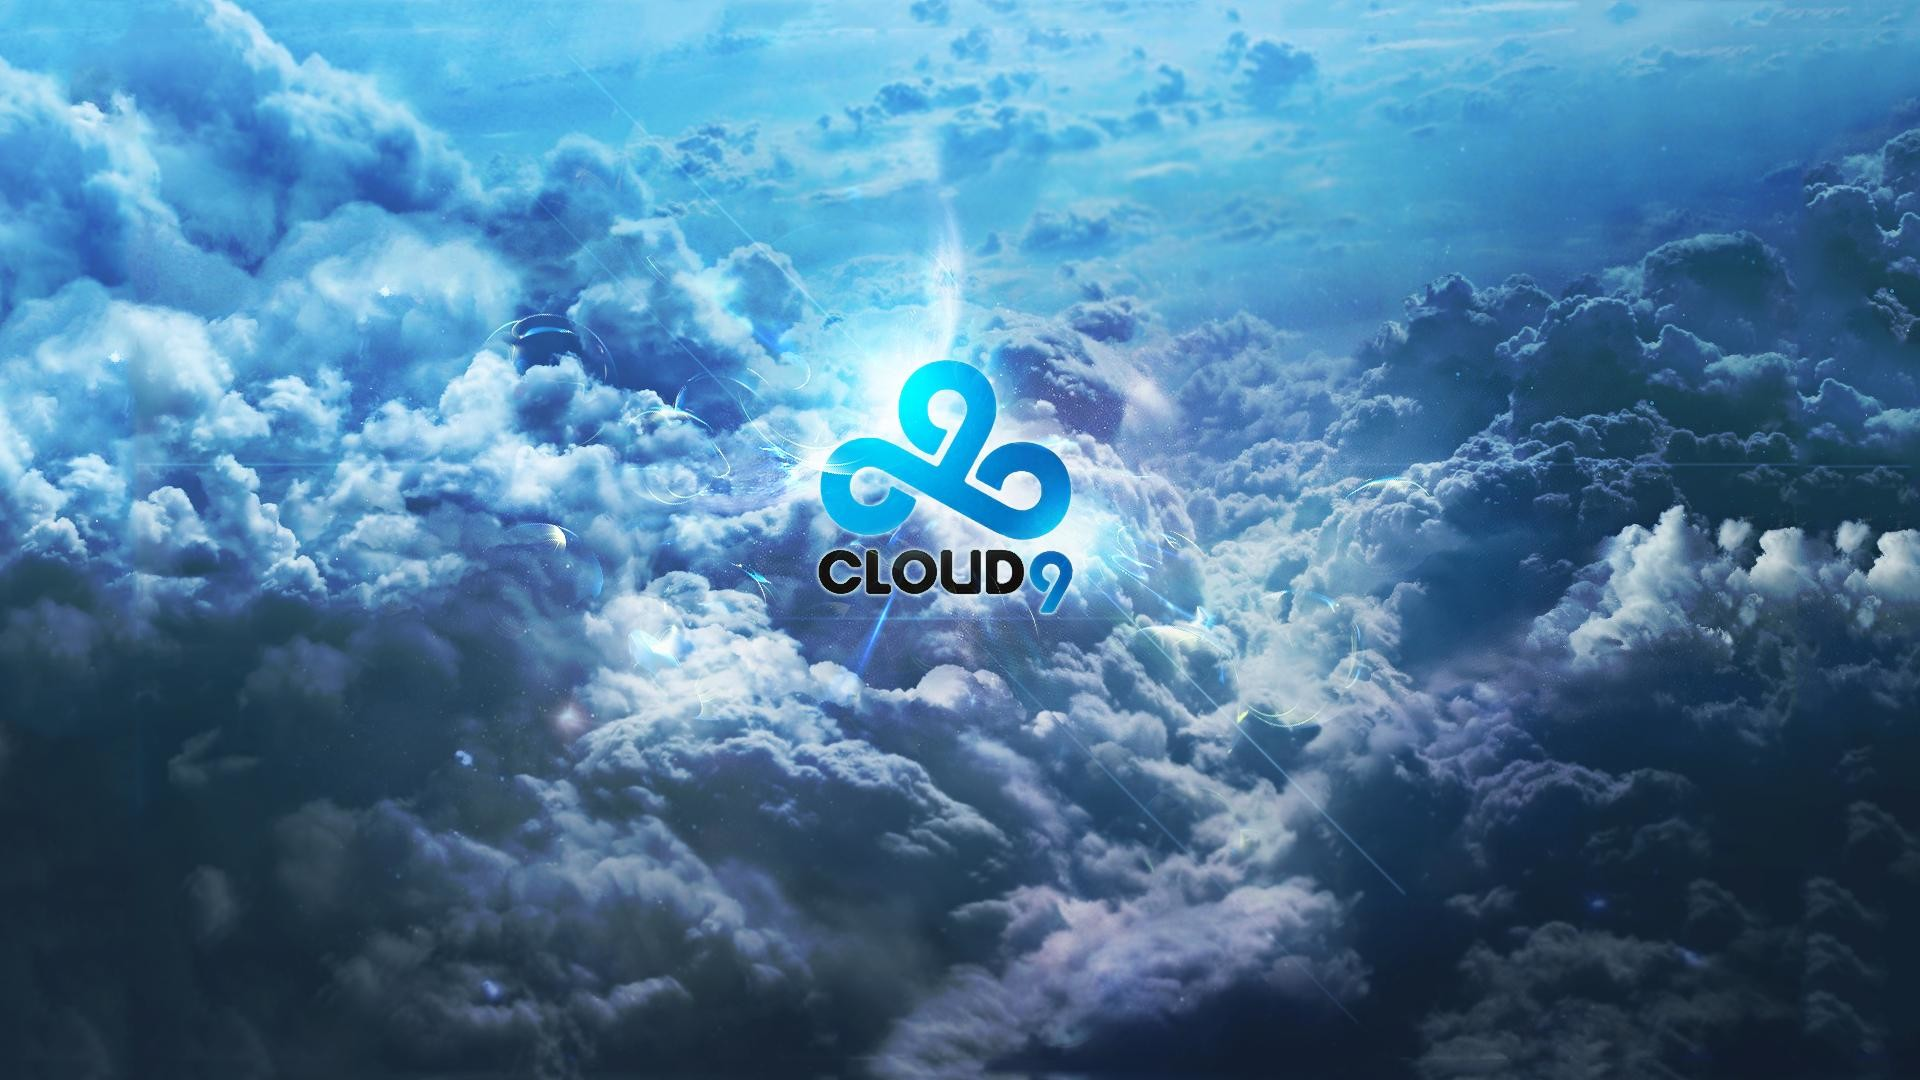 1920x1080 C9 Logo. Cloud9 Wallpaper